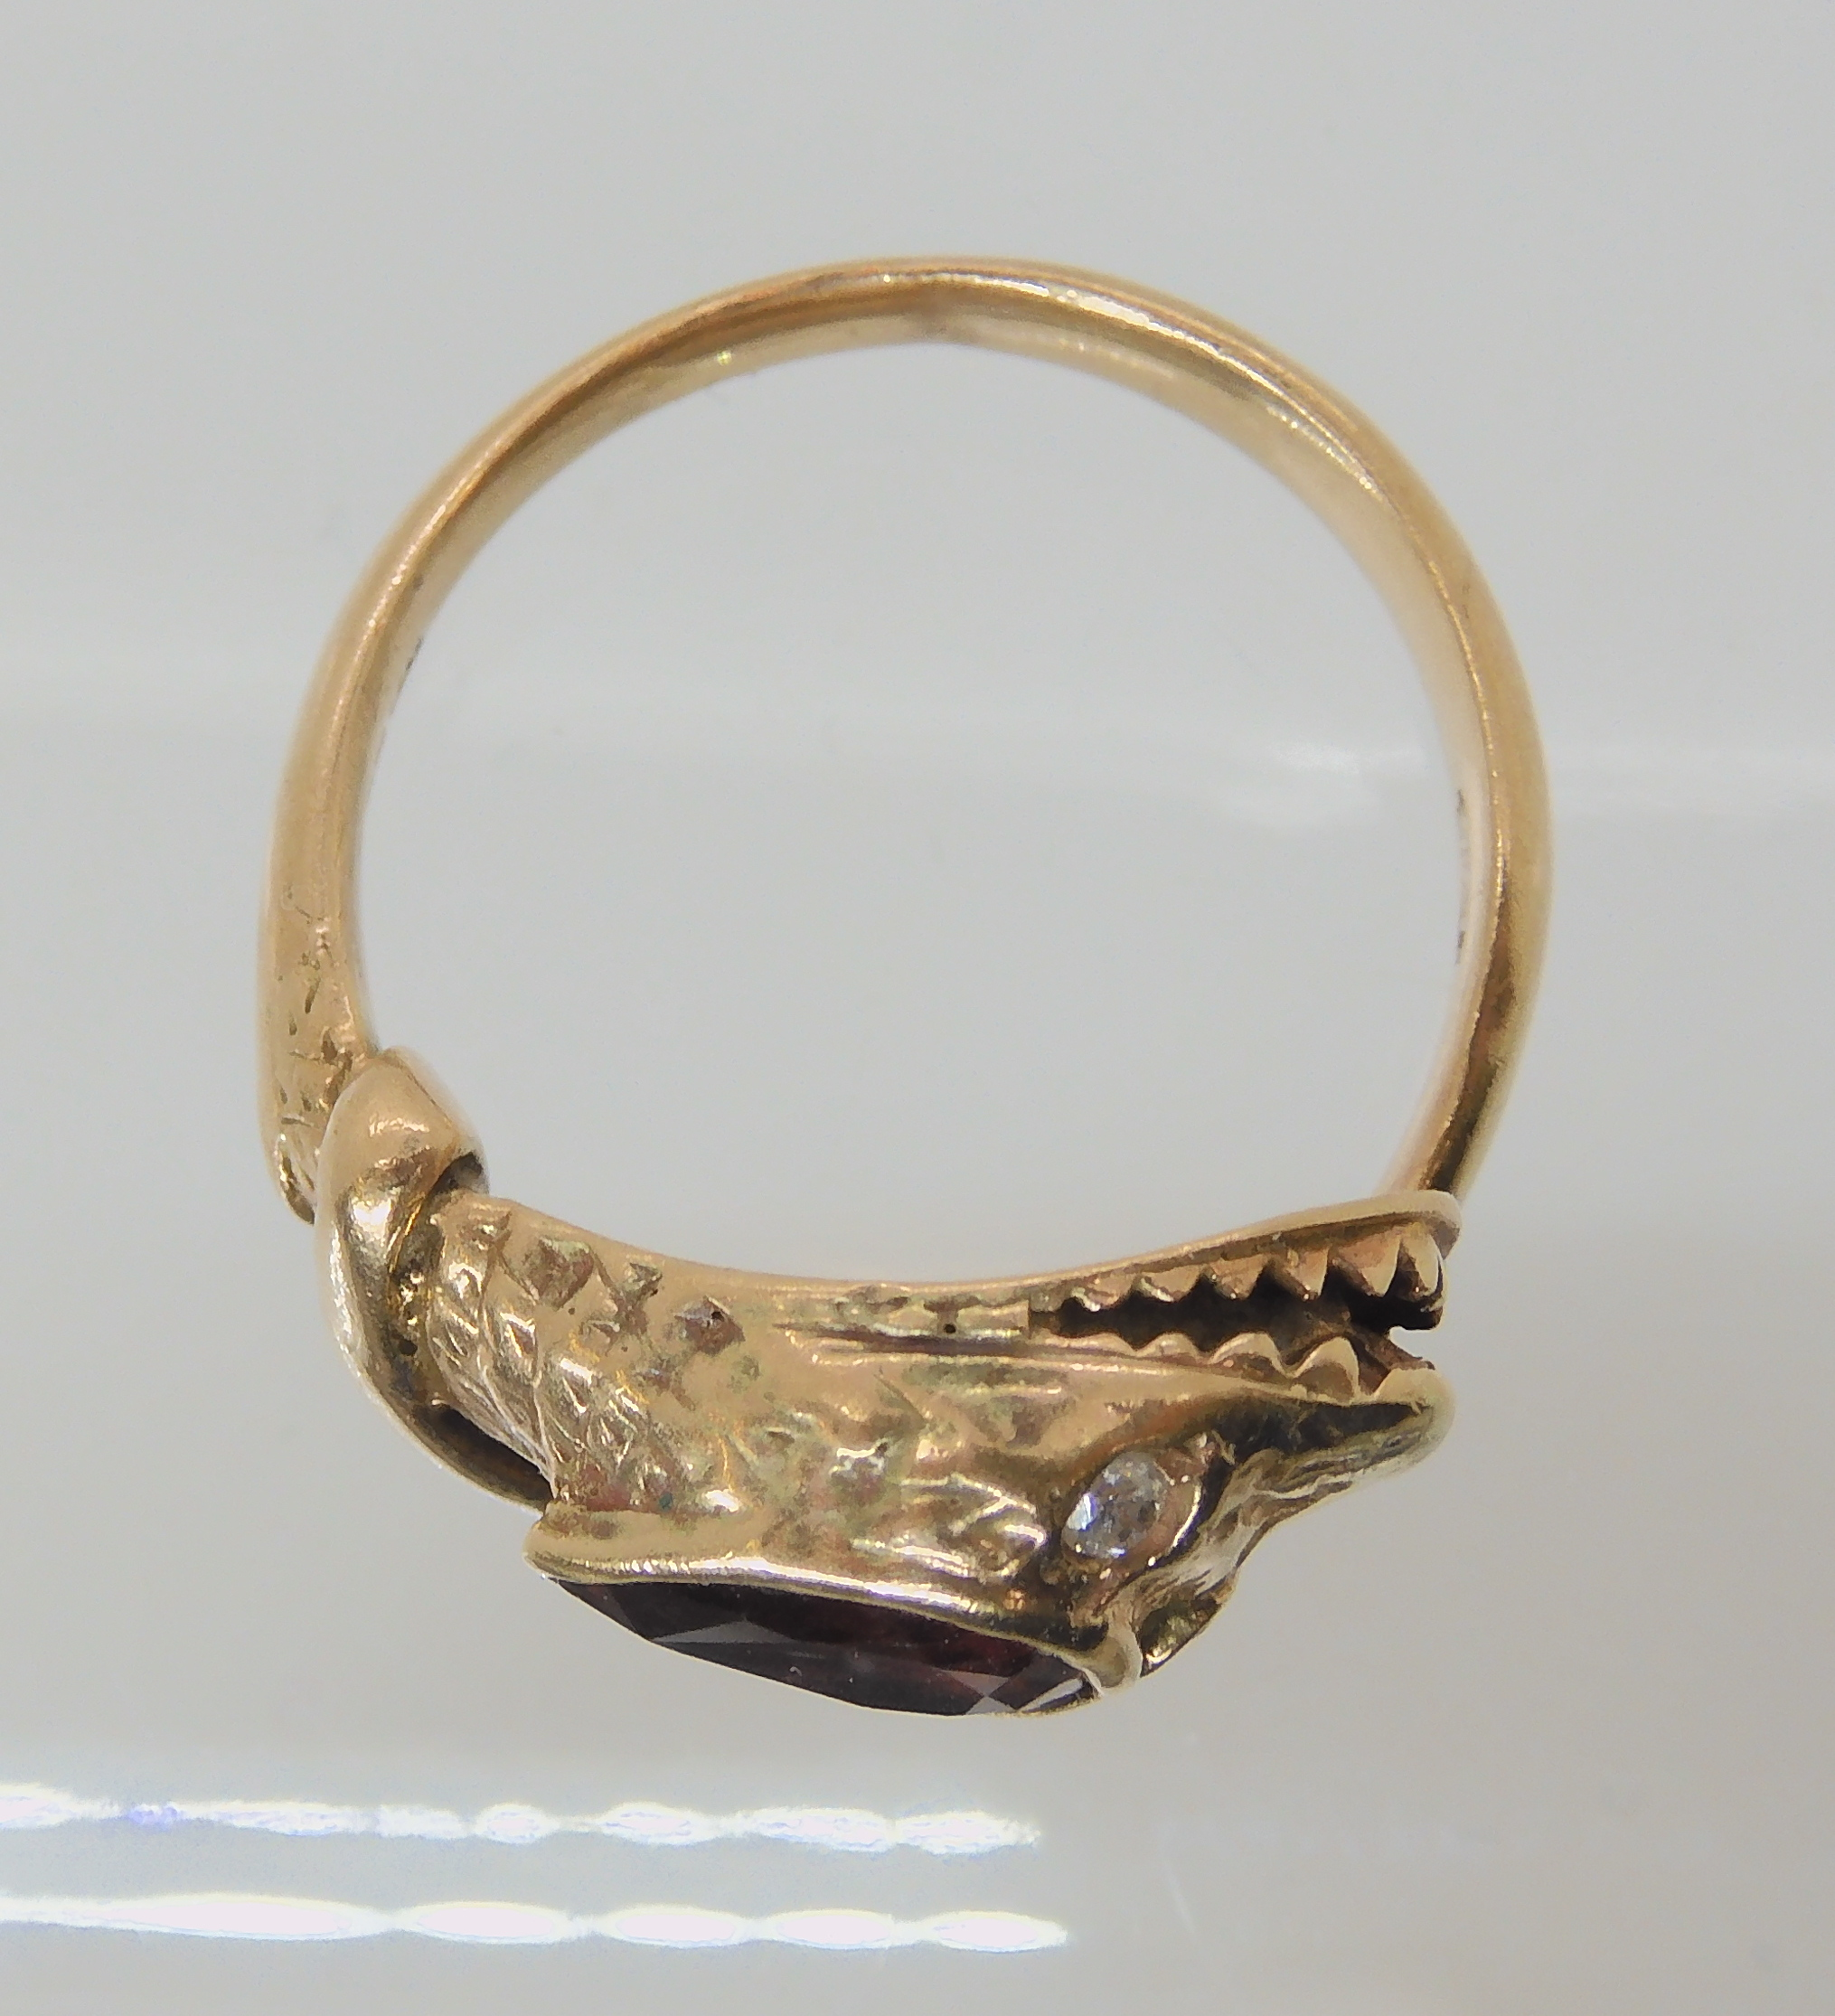 A 9CT ROSE GOLD GARNET AND DIAMOND SNAKE RING finger size J, weight 4.5gms Condition Report: Has - Image 2 of 8